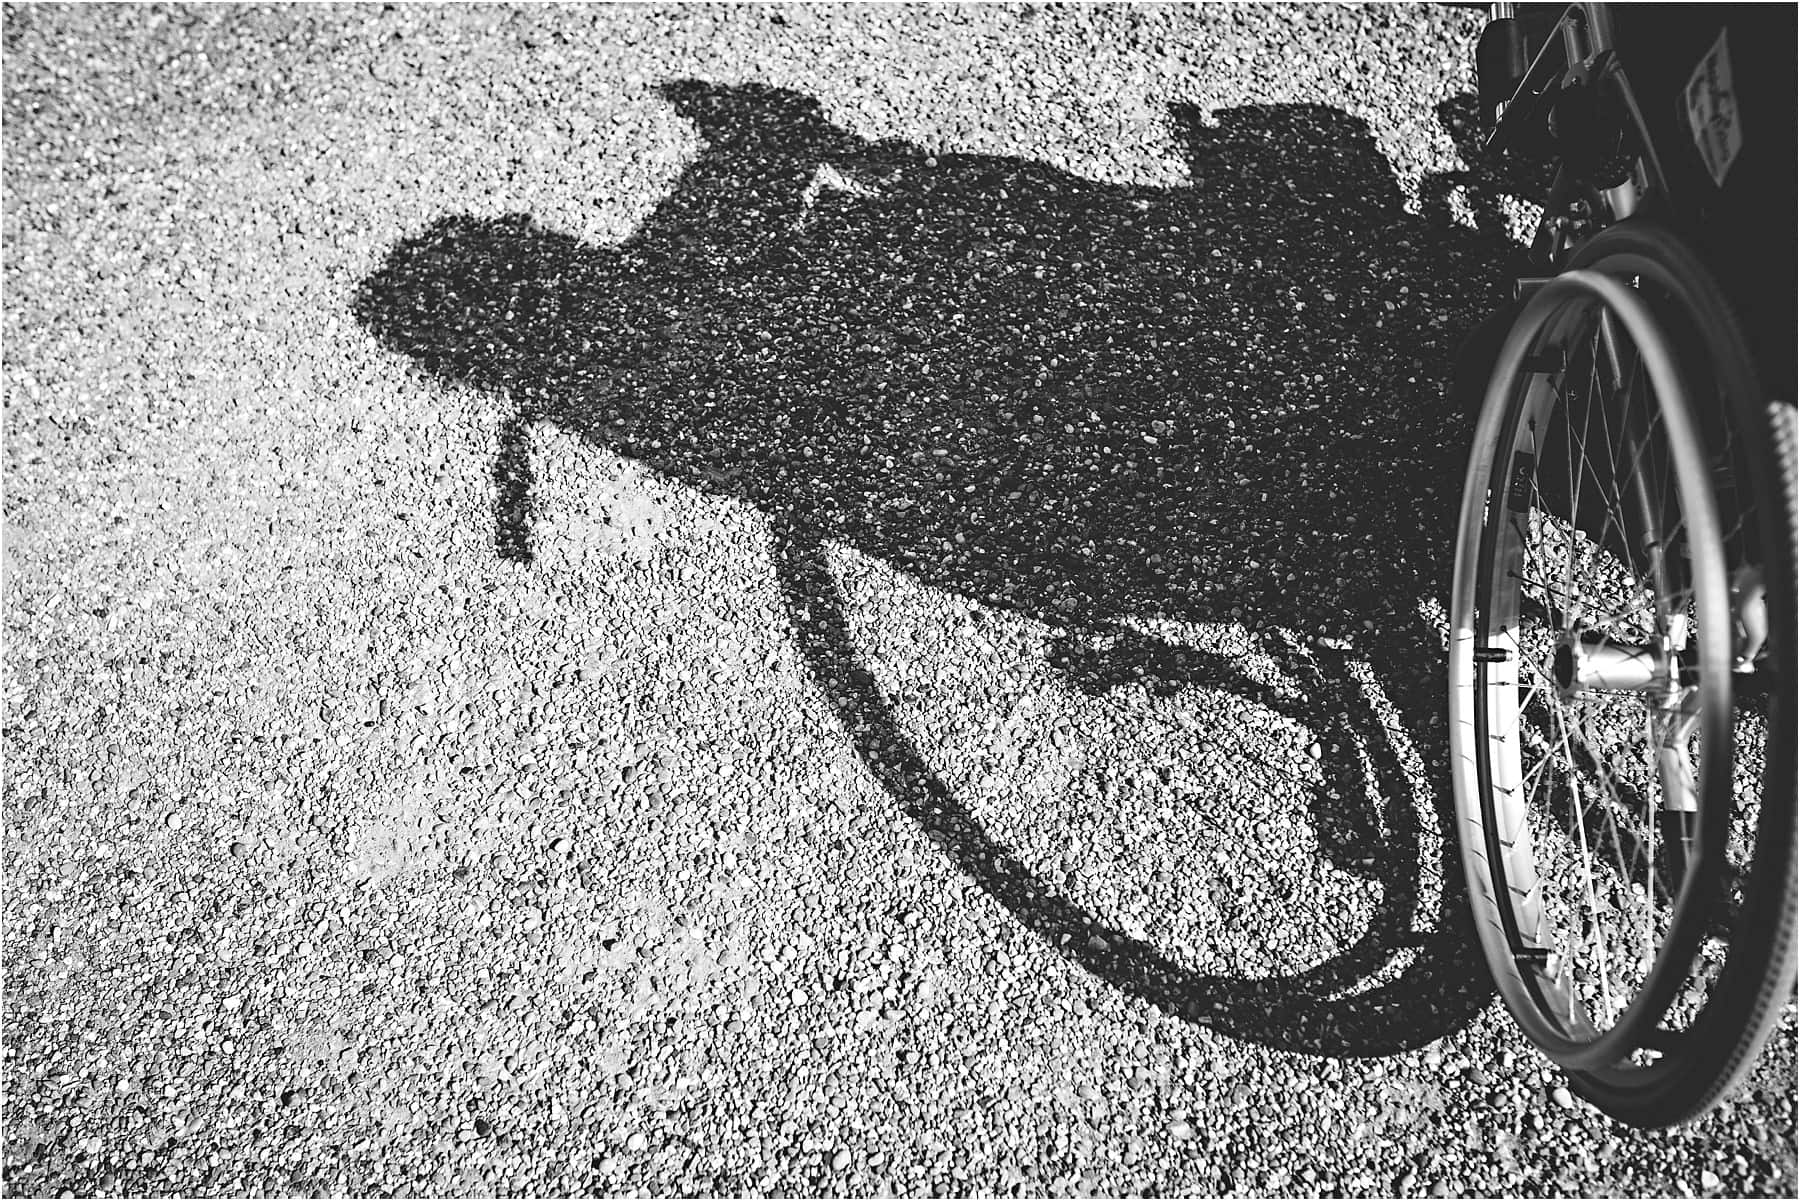 Shadow of a wheelchair